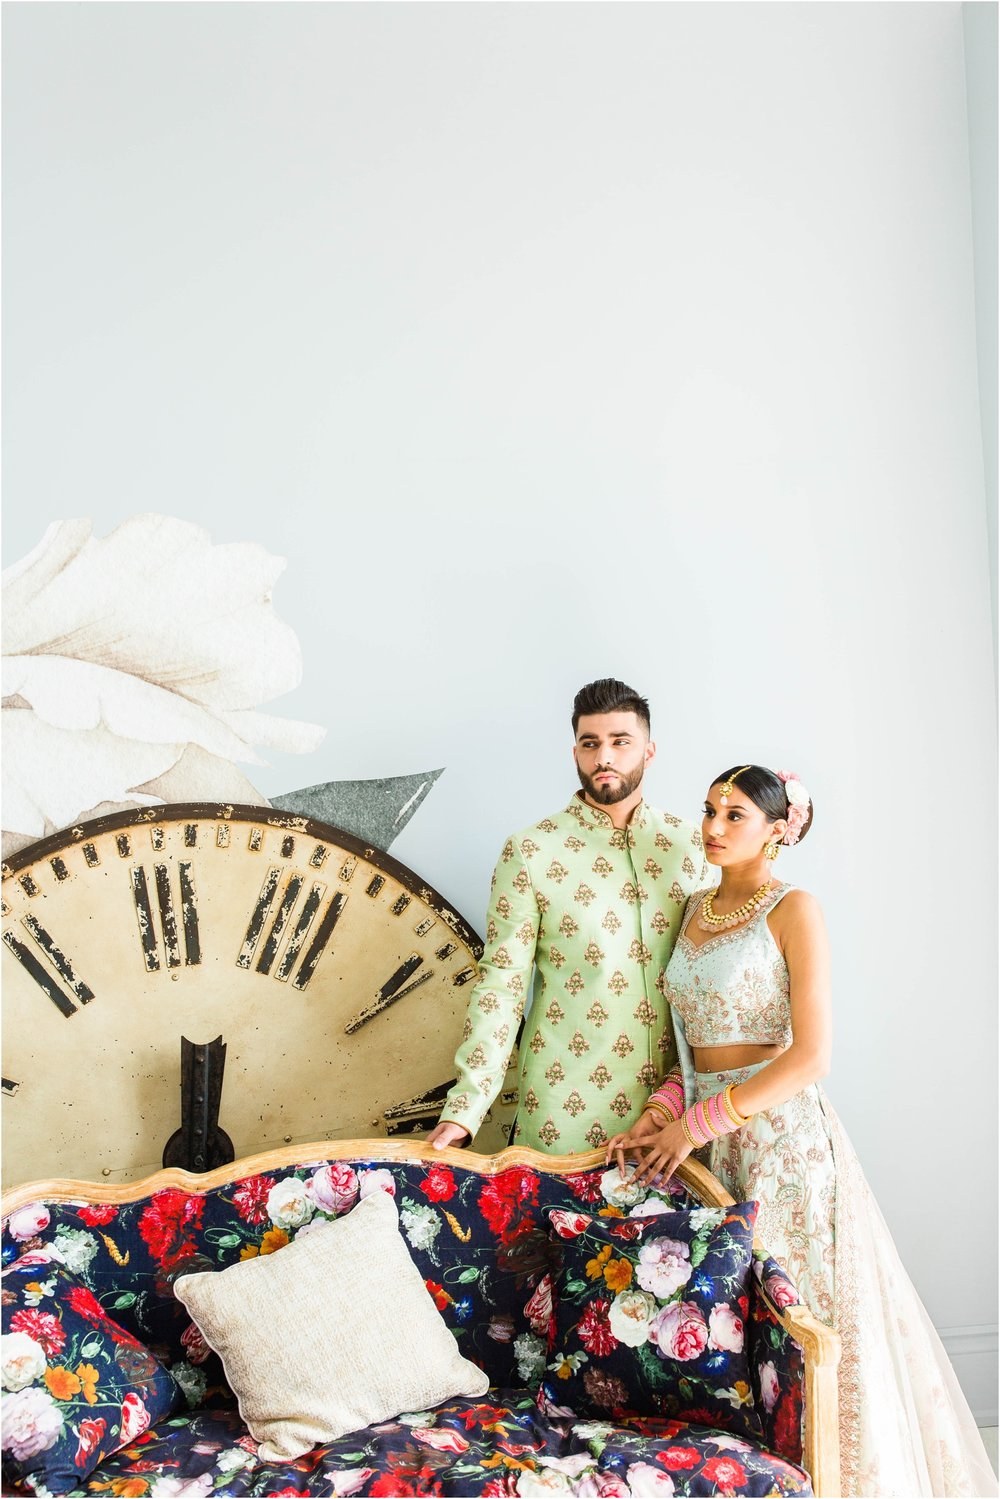 Mint-Room-Studios-Rustic-Blush-Styled-Shoot-Toronto-Mississauga-Brampton-Scarborough-GTA-Pakistani-Indian-Wedding-Engagement-Photographer-Photography_0002.jpg